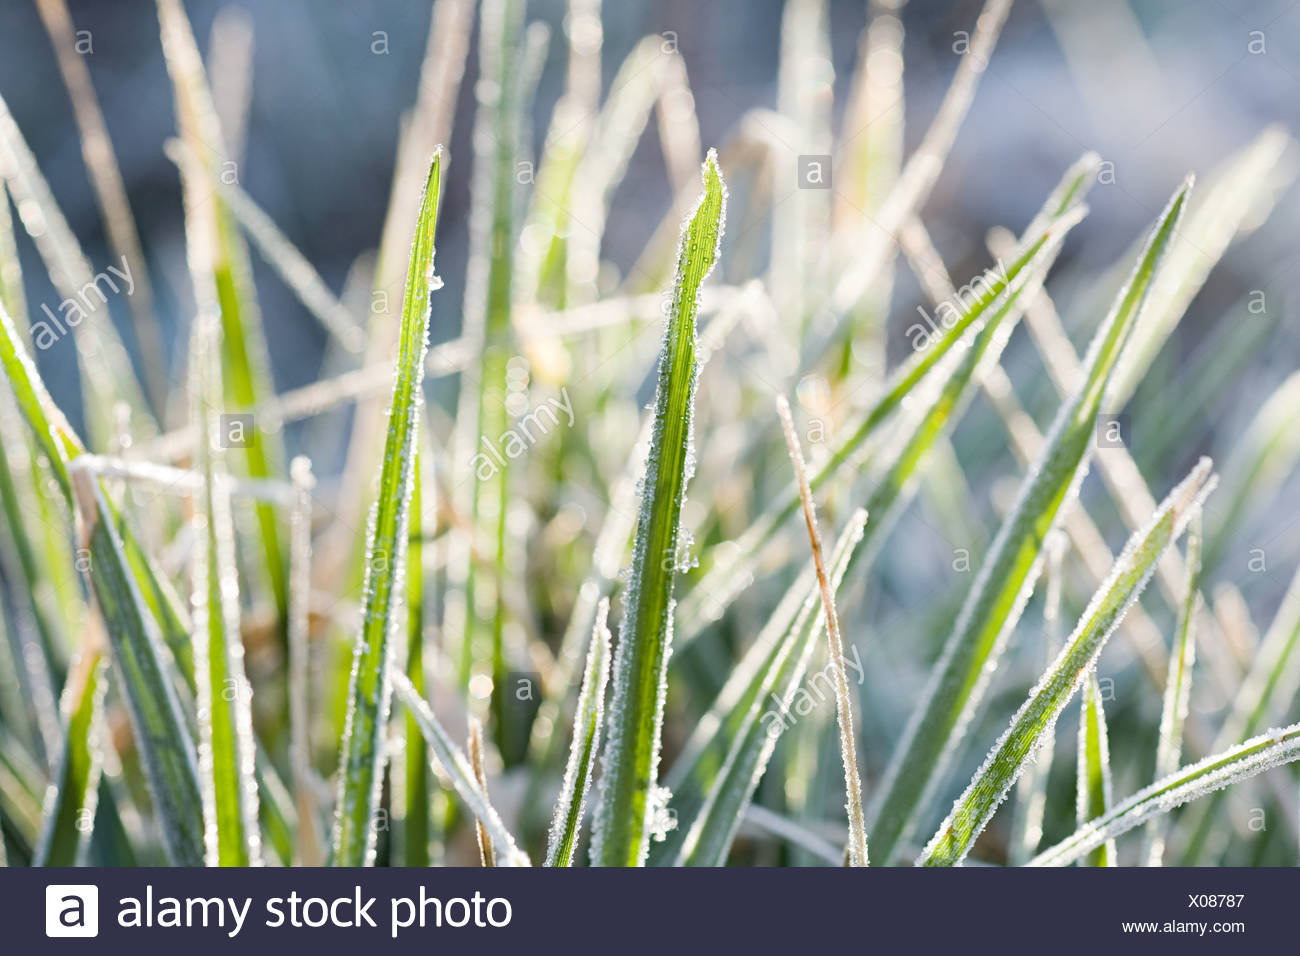 Frost covering grass - Stock Image